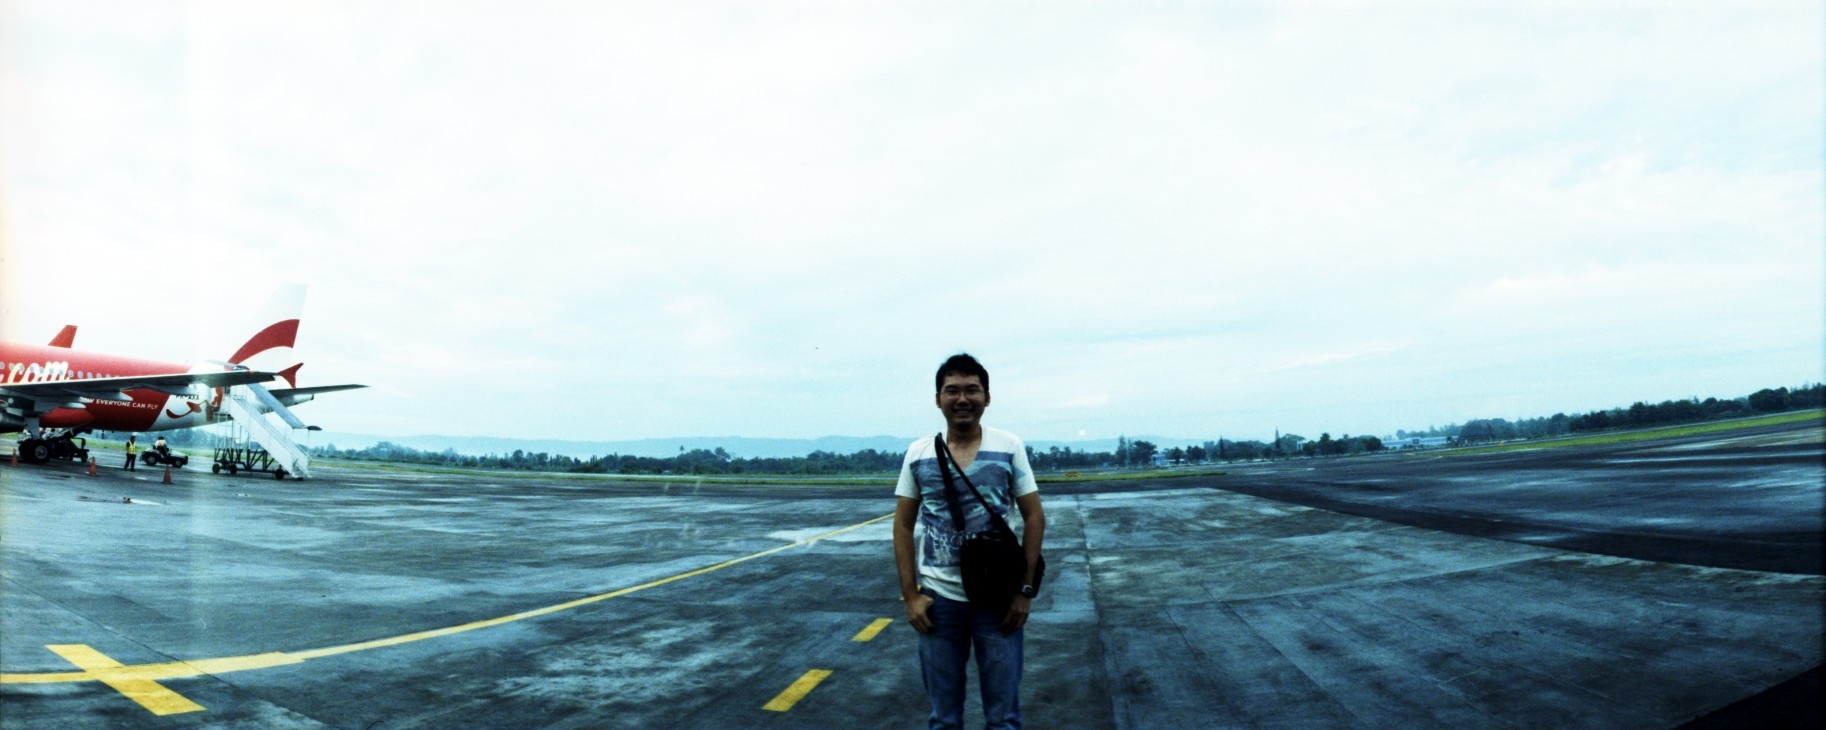 Jogja Trip - Adisucipto International Airport